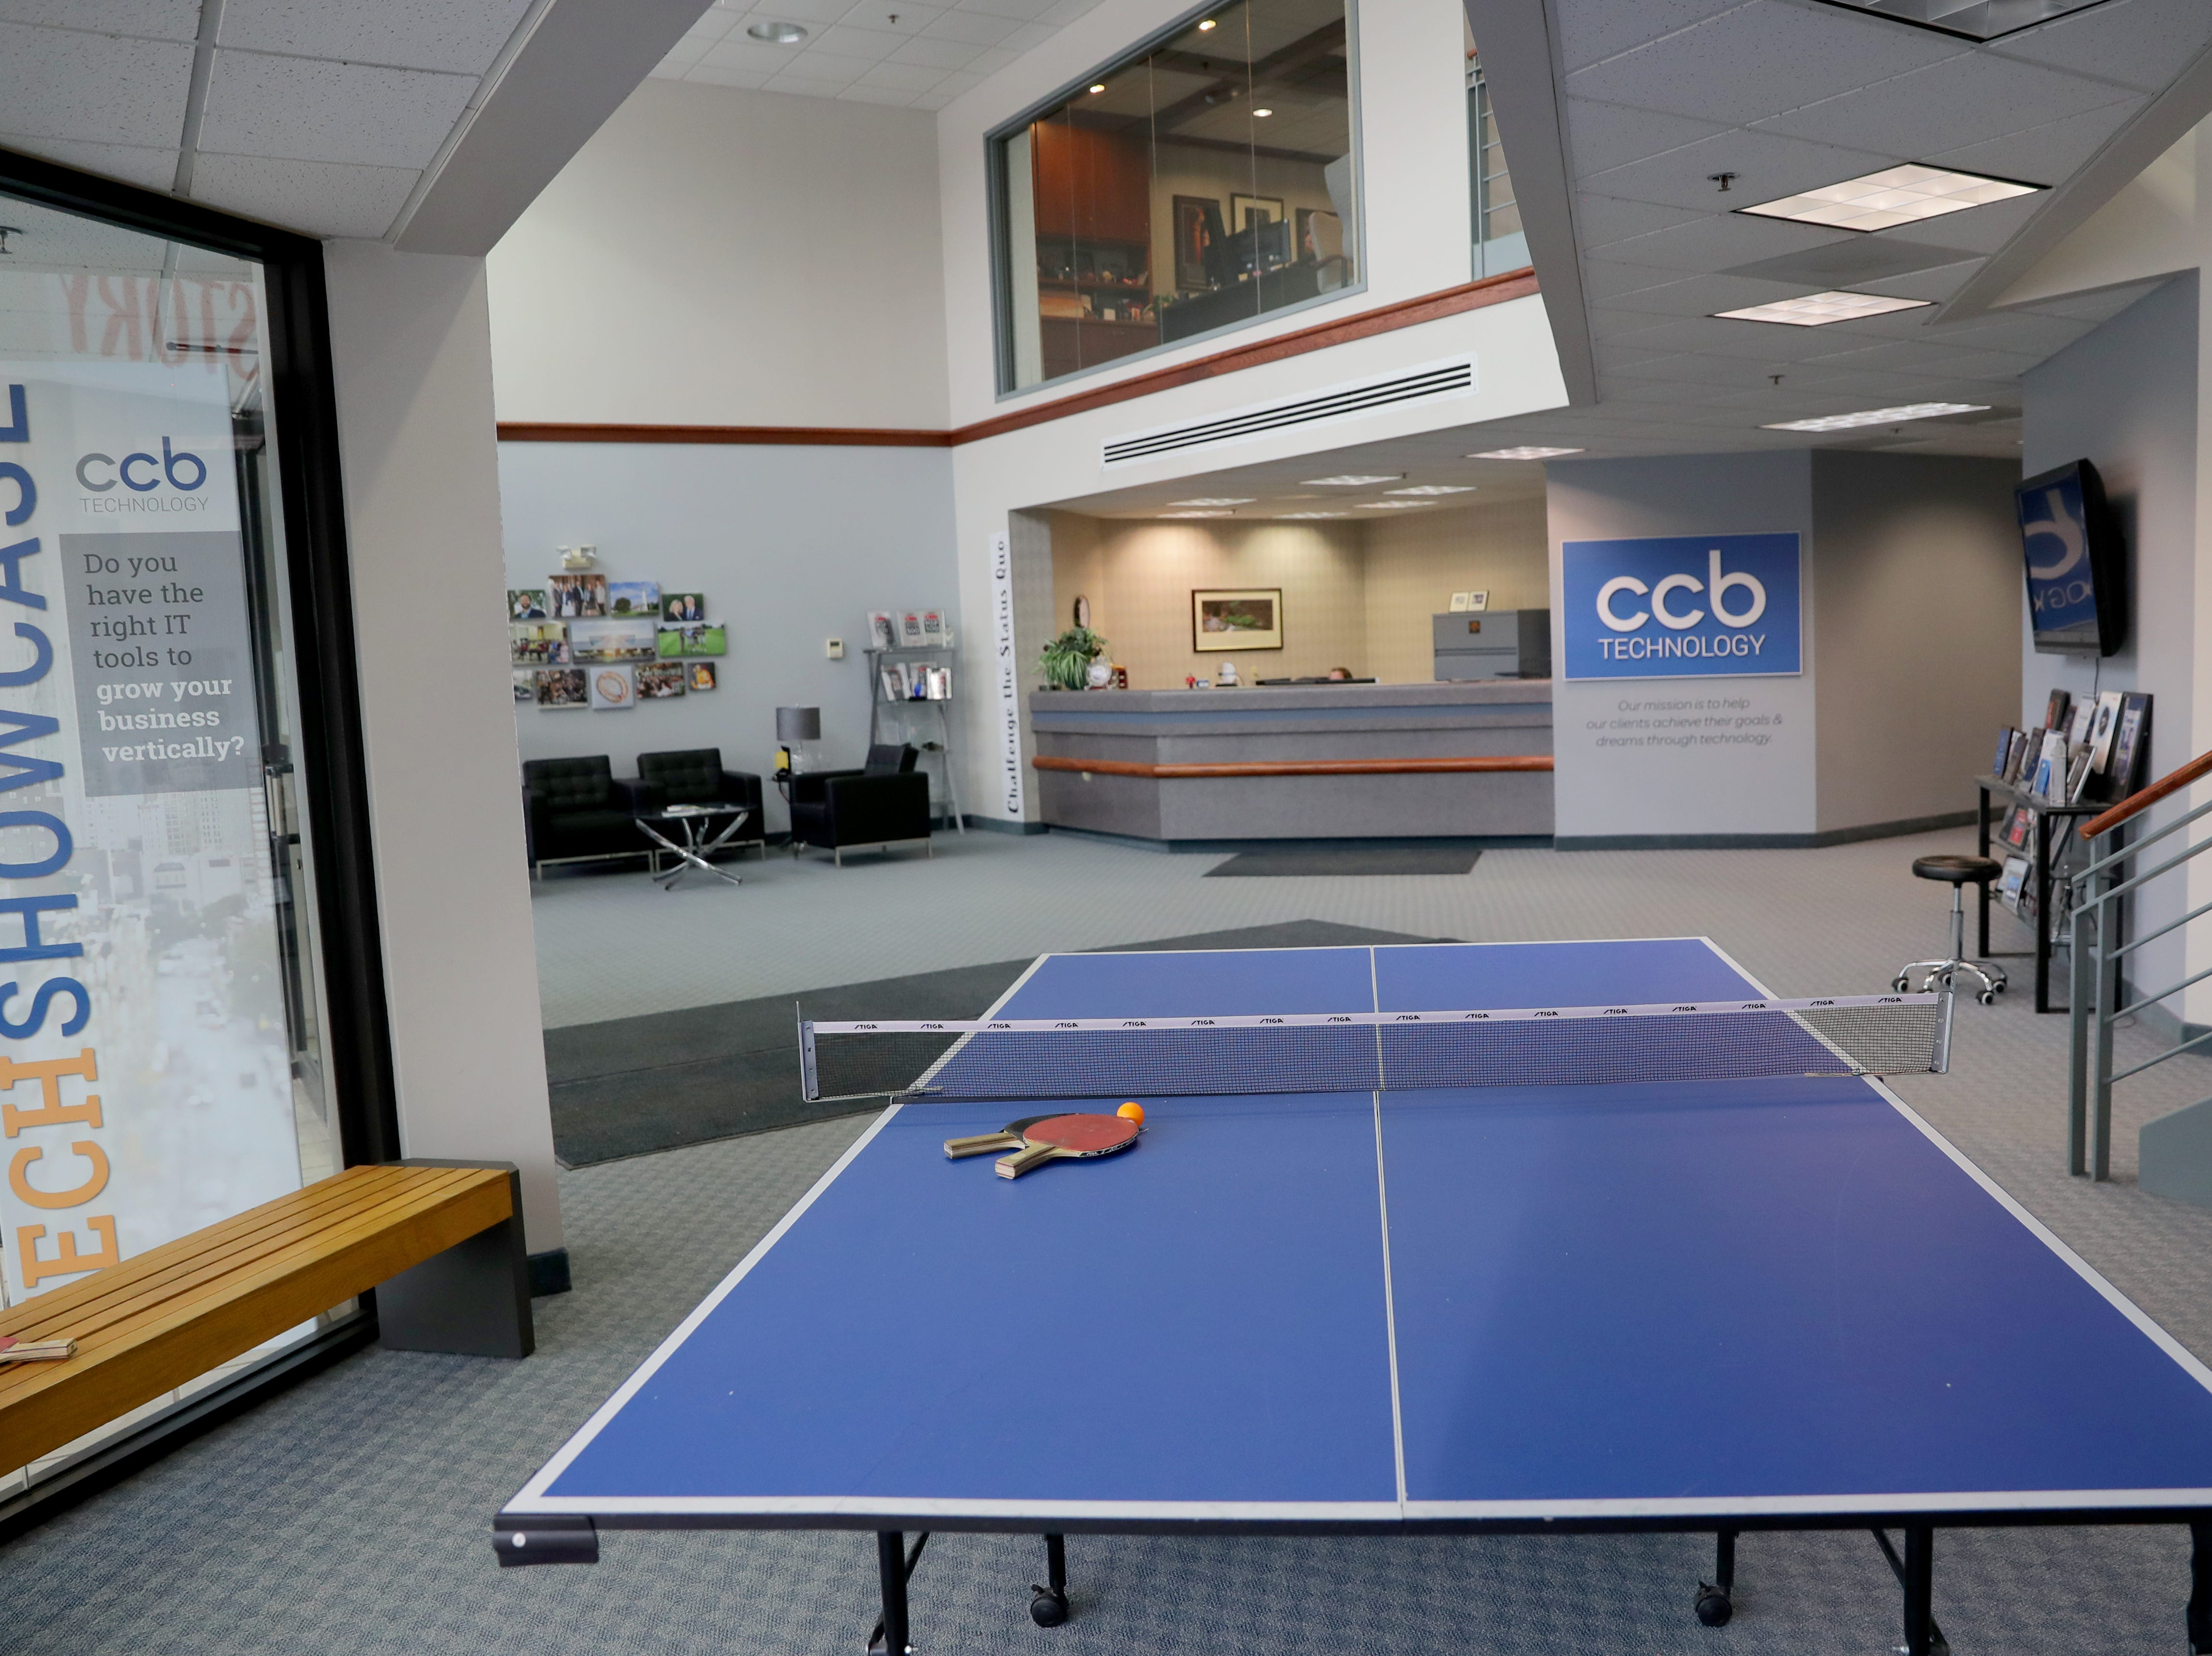 CCB Technology in Racine has a ping pong table in the lobby.